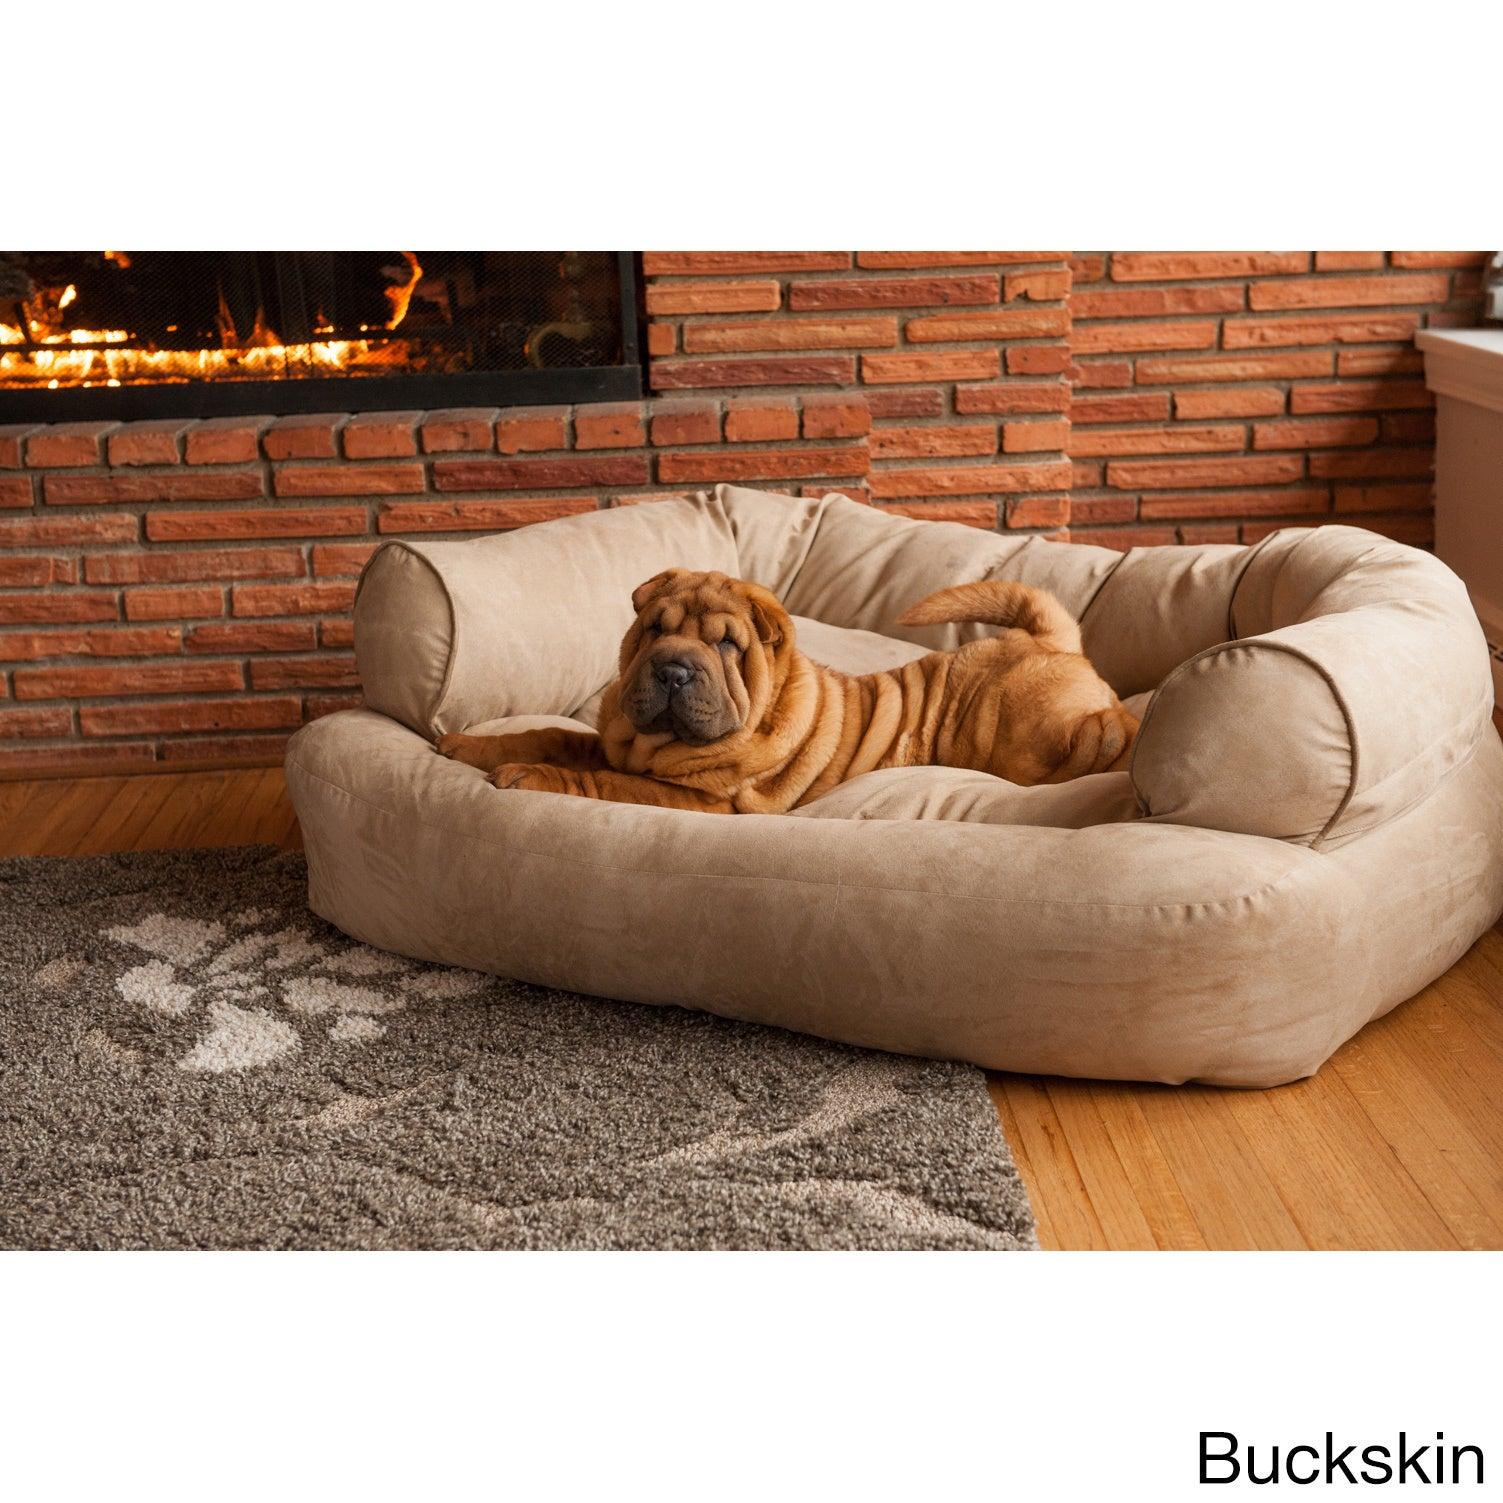 Snoozer Overstuffed Solid Microsede Luxury Pet Sofa   Free Shipping Today    Overstock   20891746